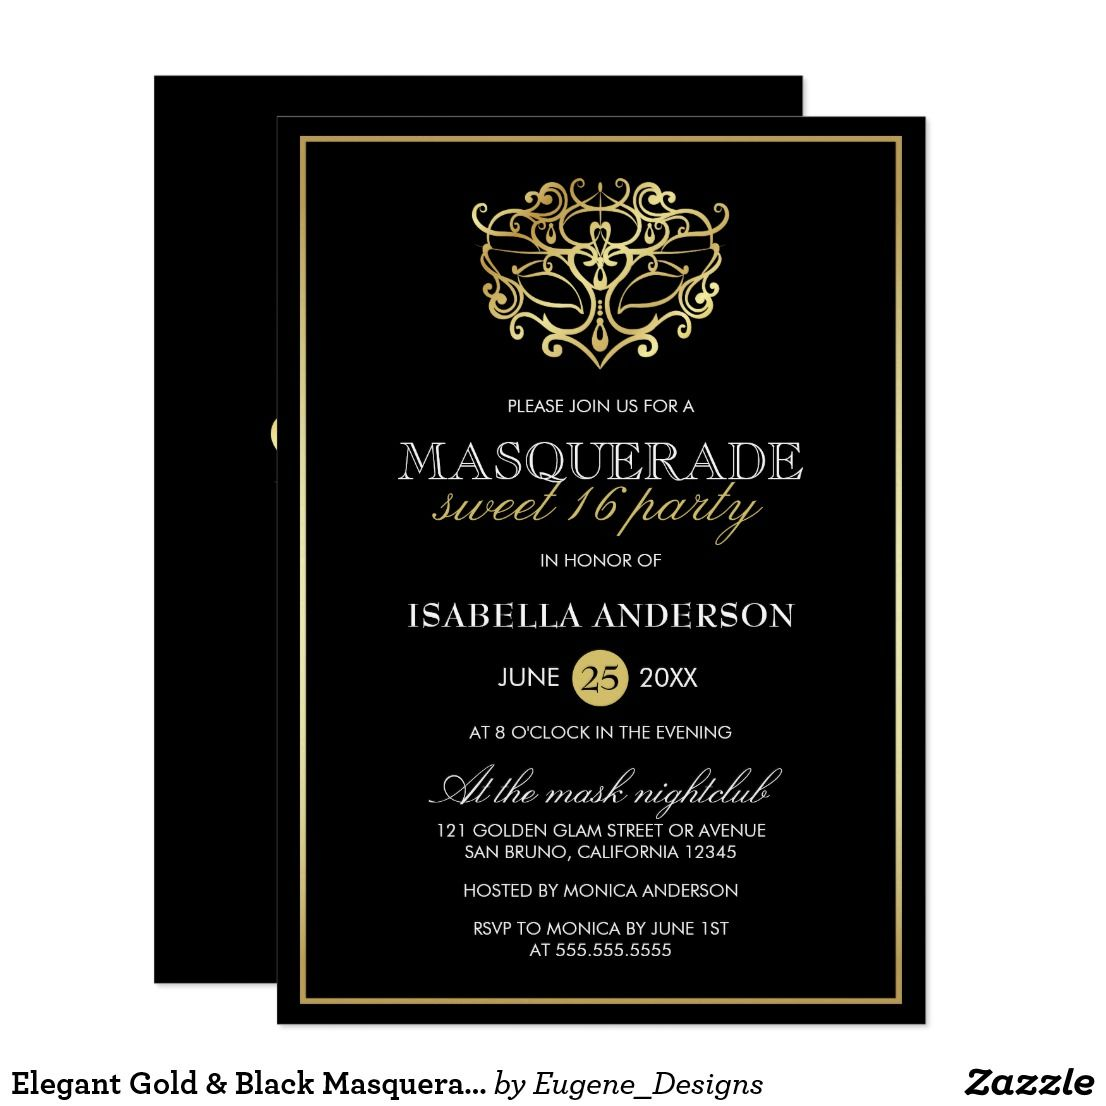 Elegant gold black masquerade sweet 16 party card sweet 16 elegant gold black masquerade sweet 16 party card monicamarmolfo Image collections